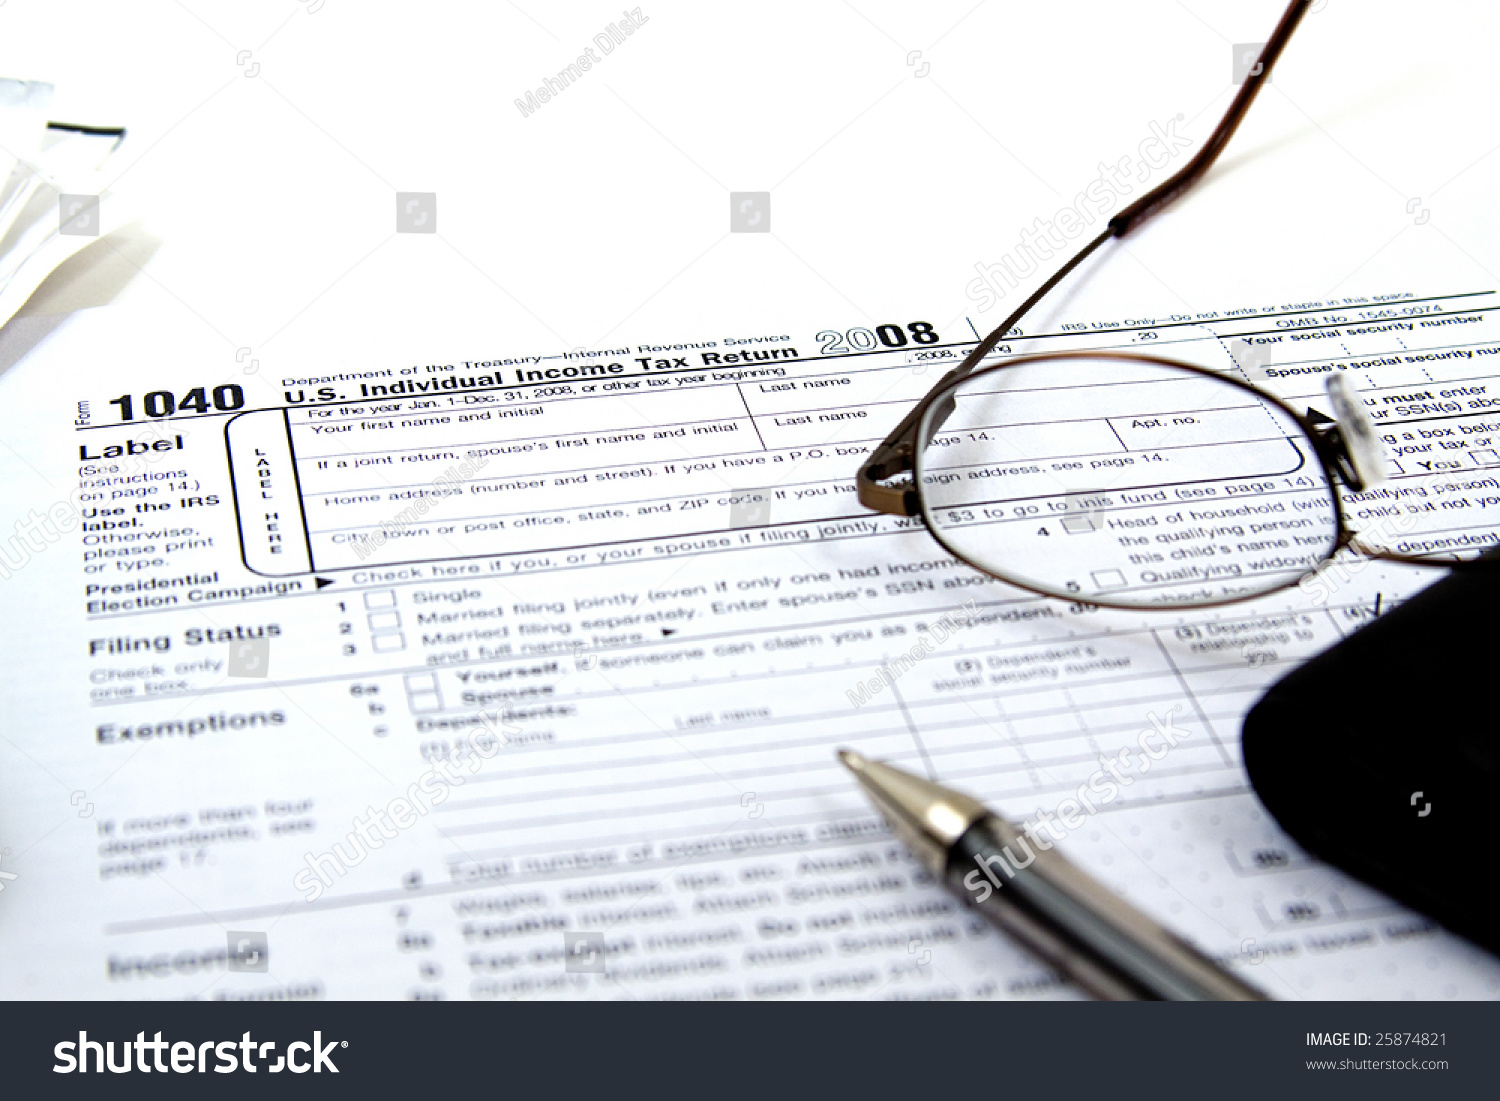 Preparing taxes form 1040 2008 stock photo 25874821 shutterstock preparing taxes form 1040 for 2008 falaconquin